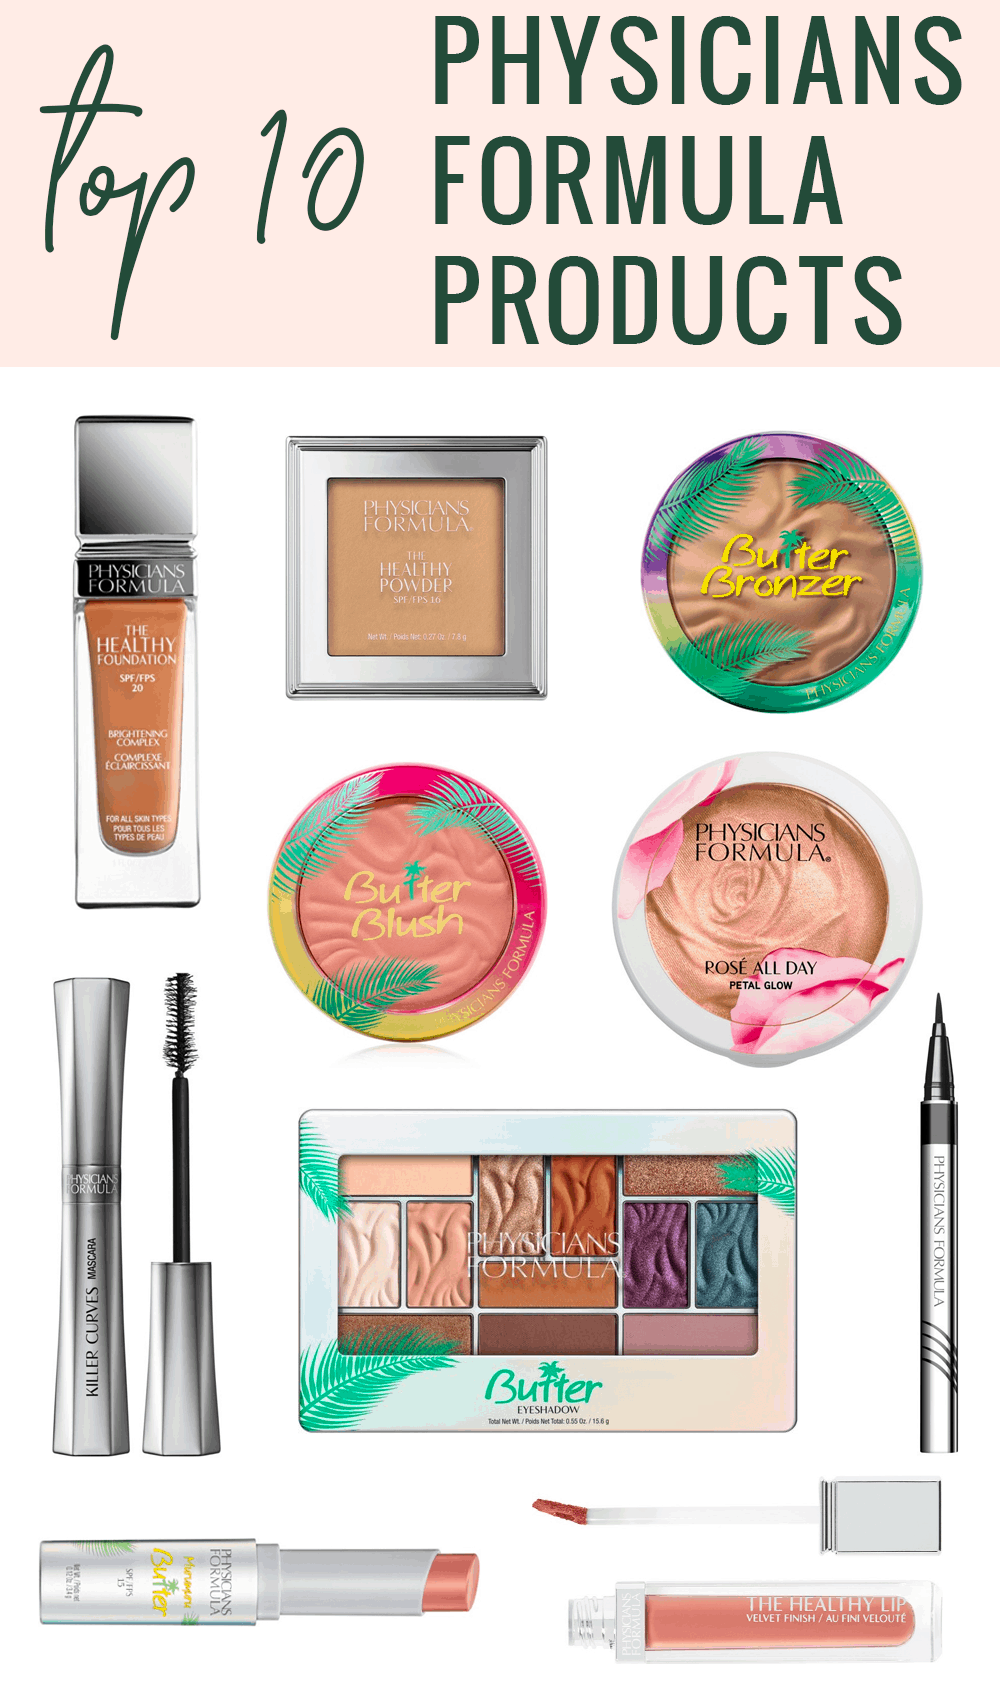 Houston beauty blogger Meg O. shares the top 10 best Physicians Formula products - eyeshadow, foundation, mascara, bronzer, and more!